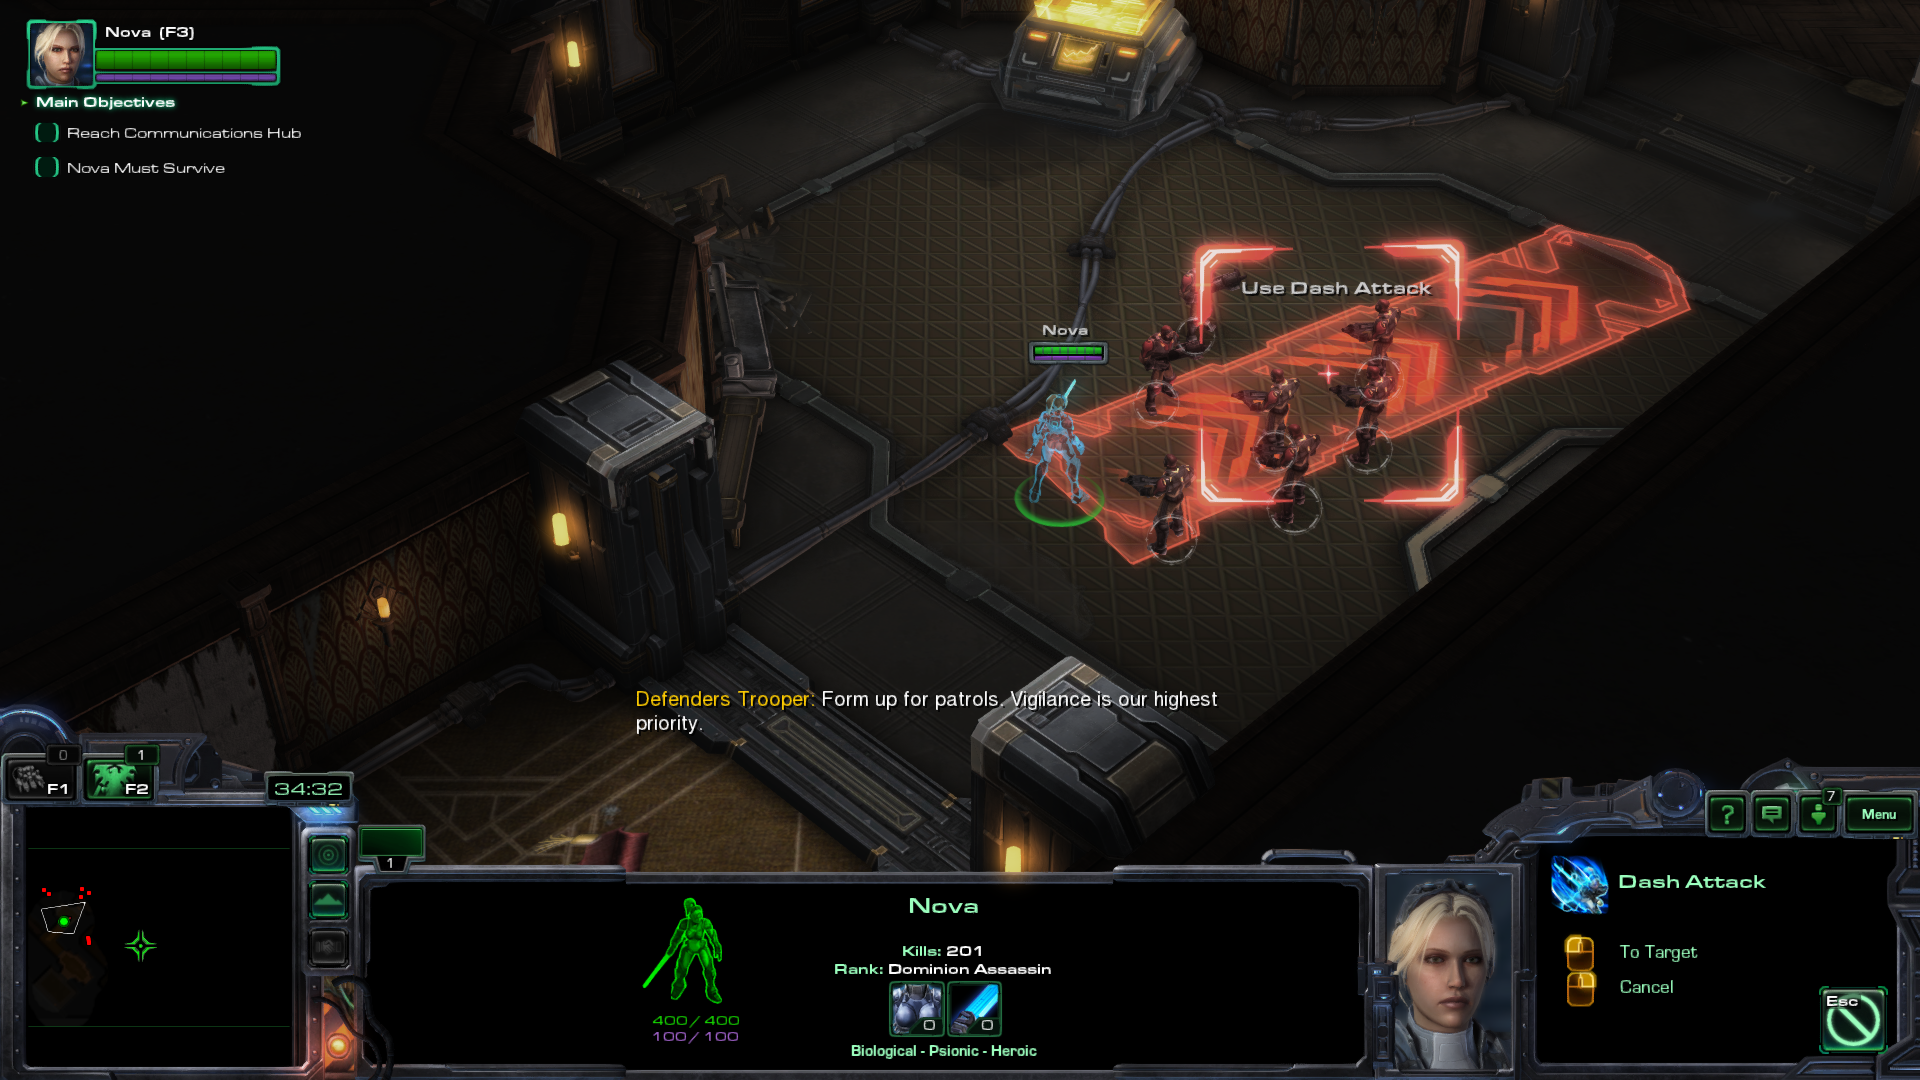 Starcraft II: Nova Ops - Mission Pack 1 Review